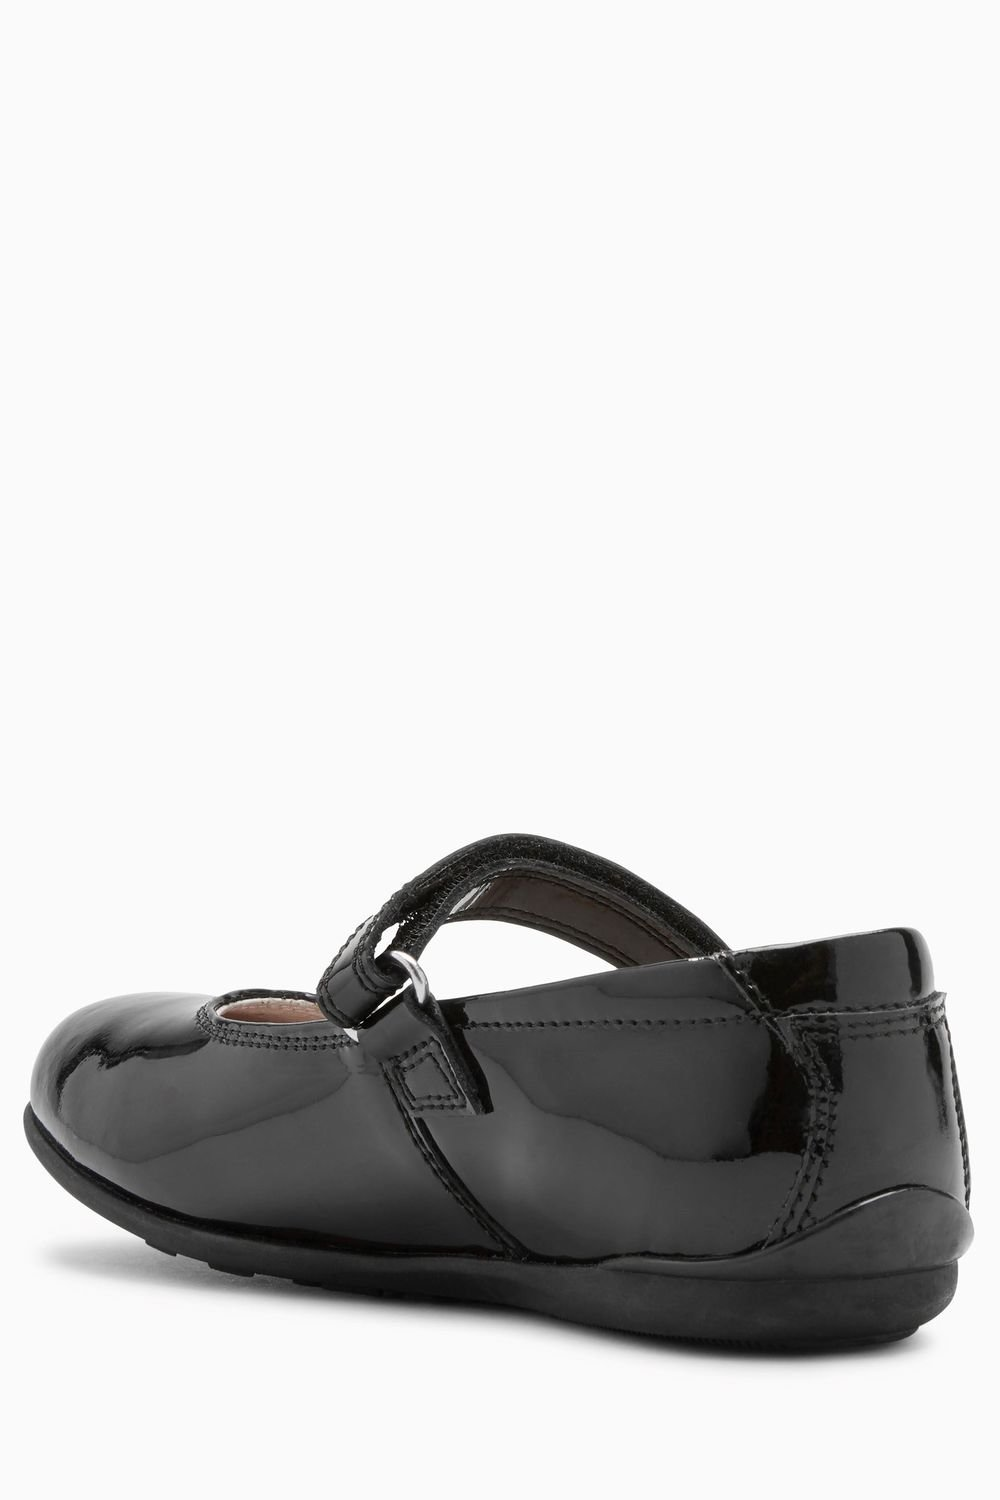 16c5b380543 Next Star Mary Jane Shoes (Older Girls) - Wide Fit Online